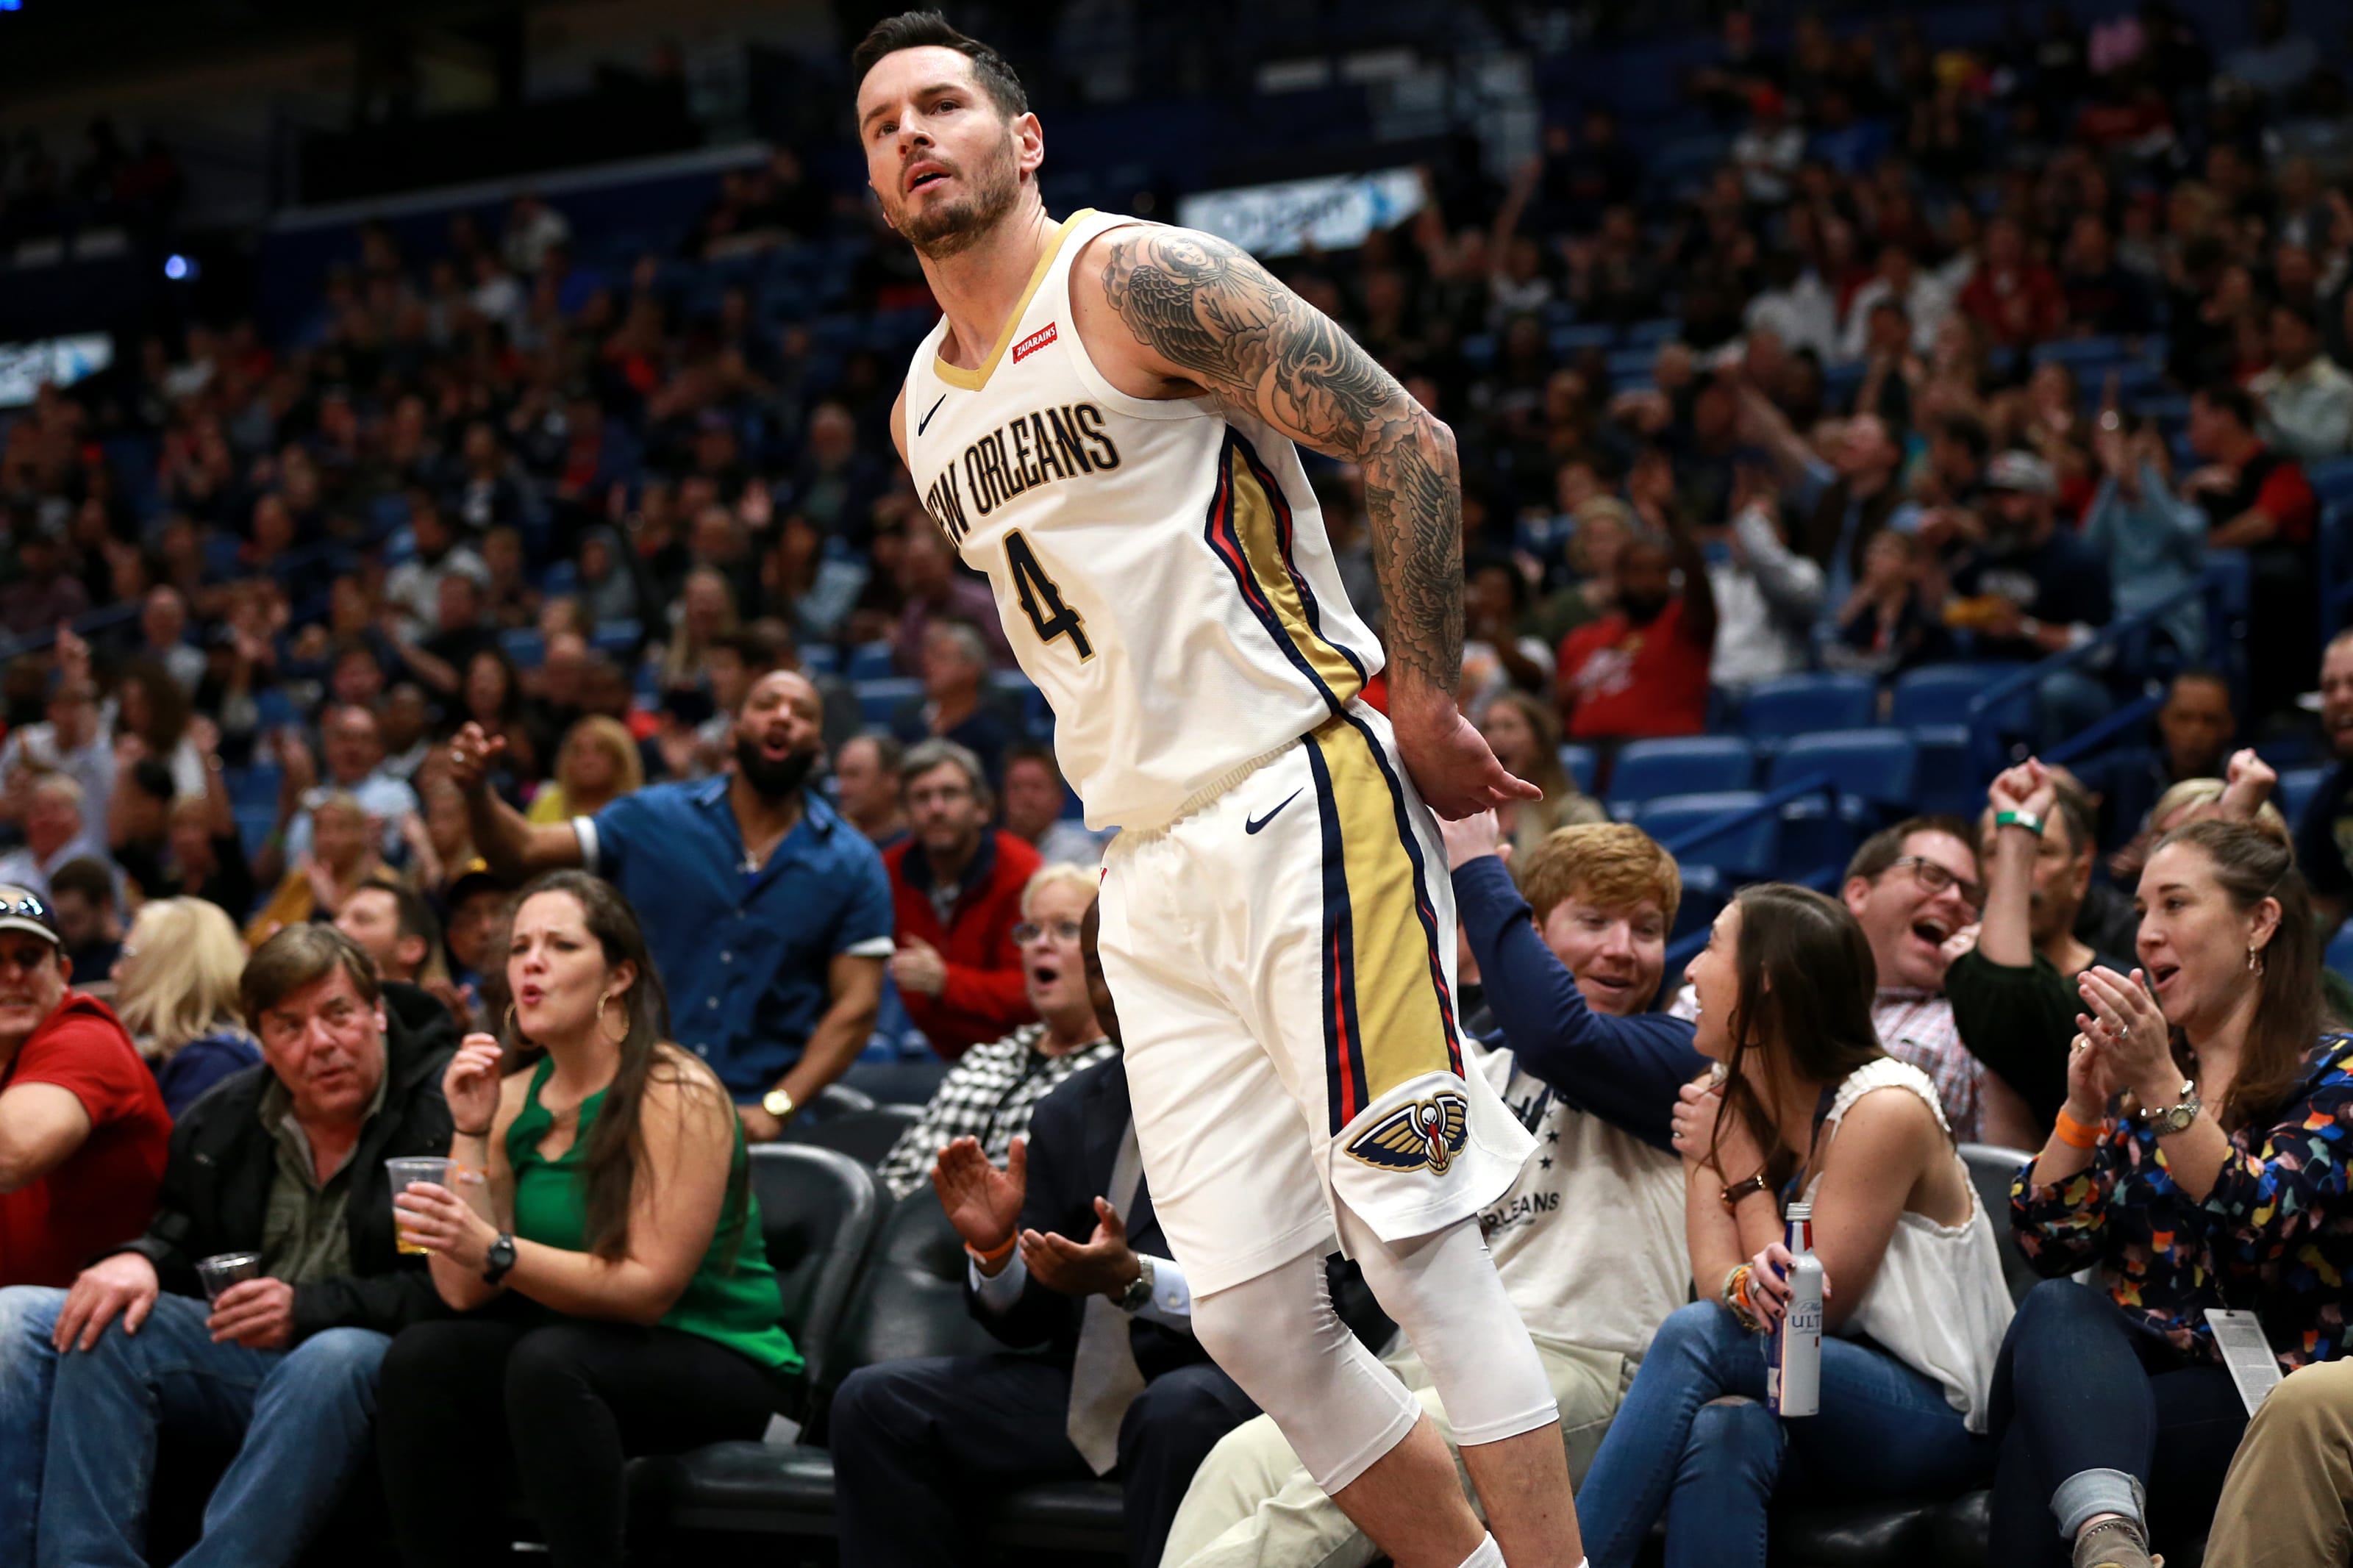 J.J. Redick drains a three for the New Orleans Pelicans against the Oklahoma City Thunder